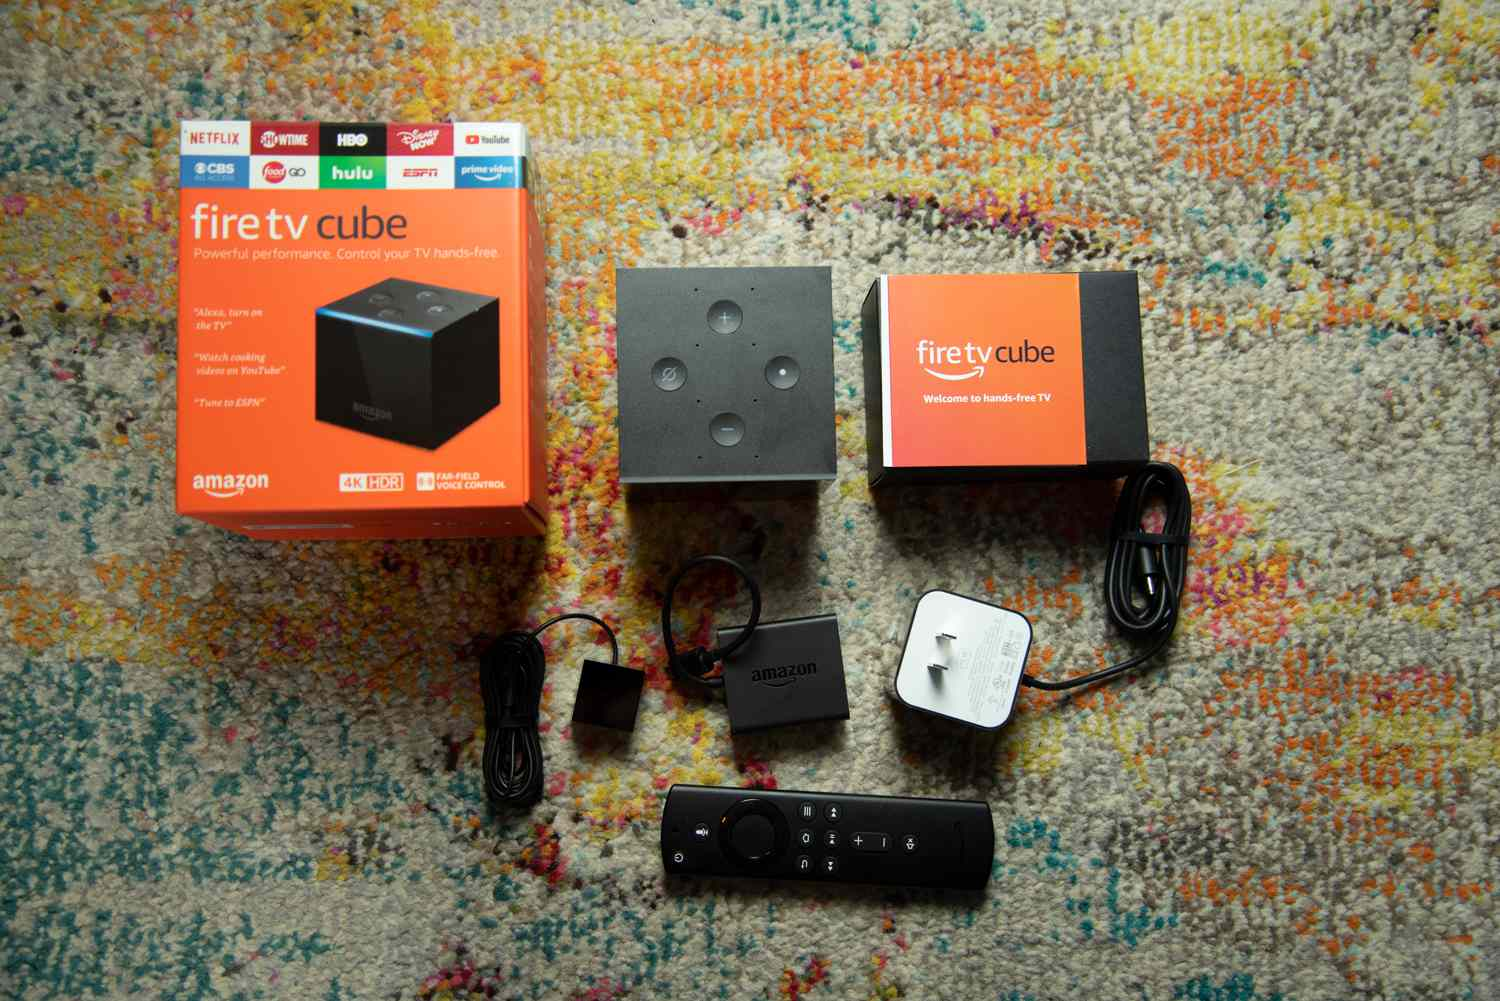 Fire TV Cube (2nd Generation)